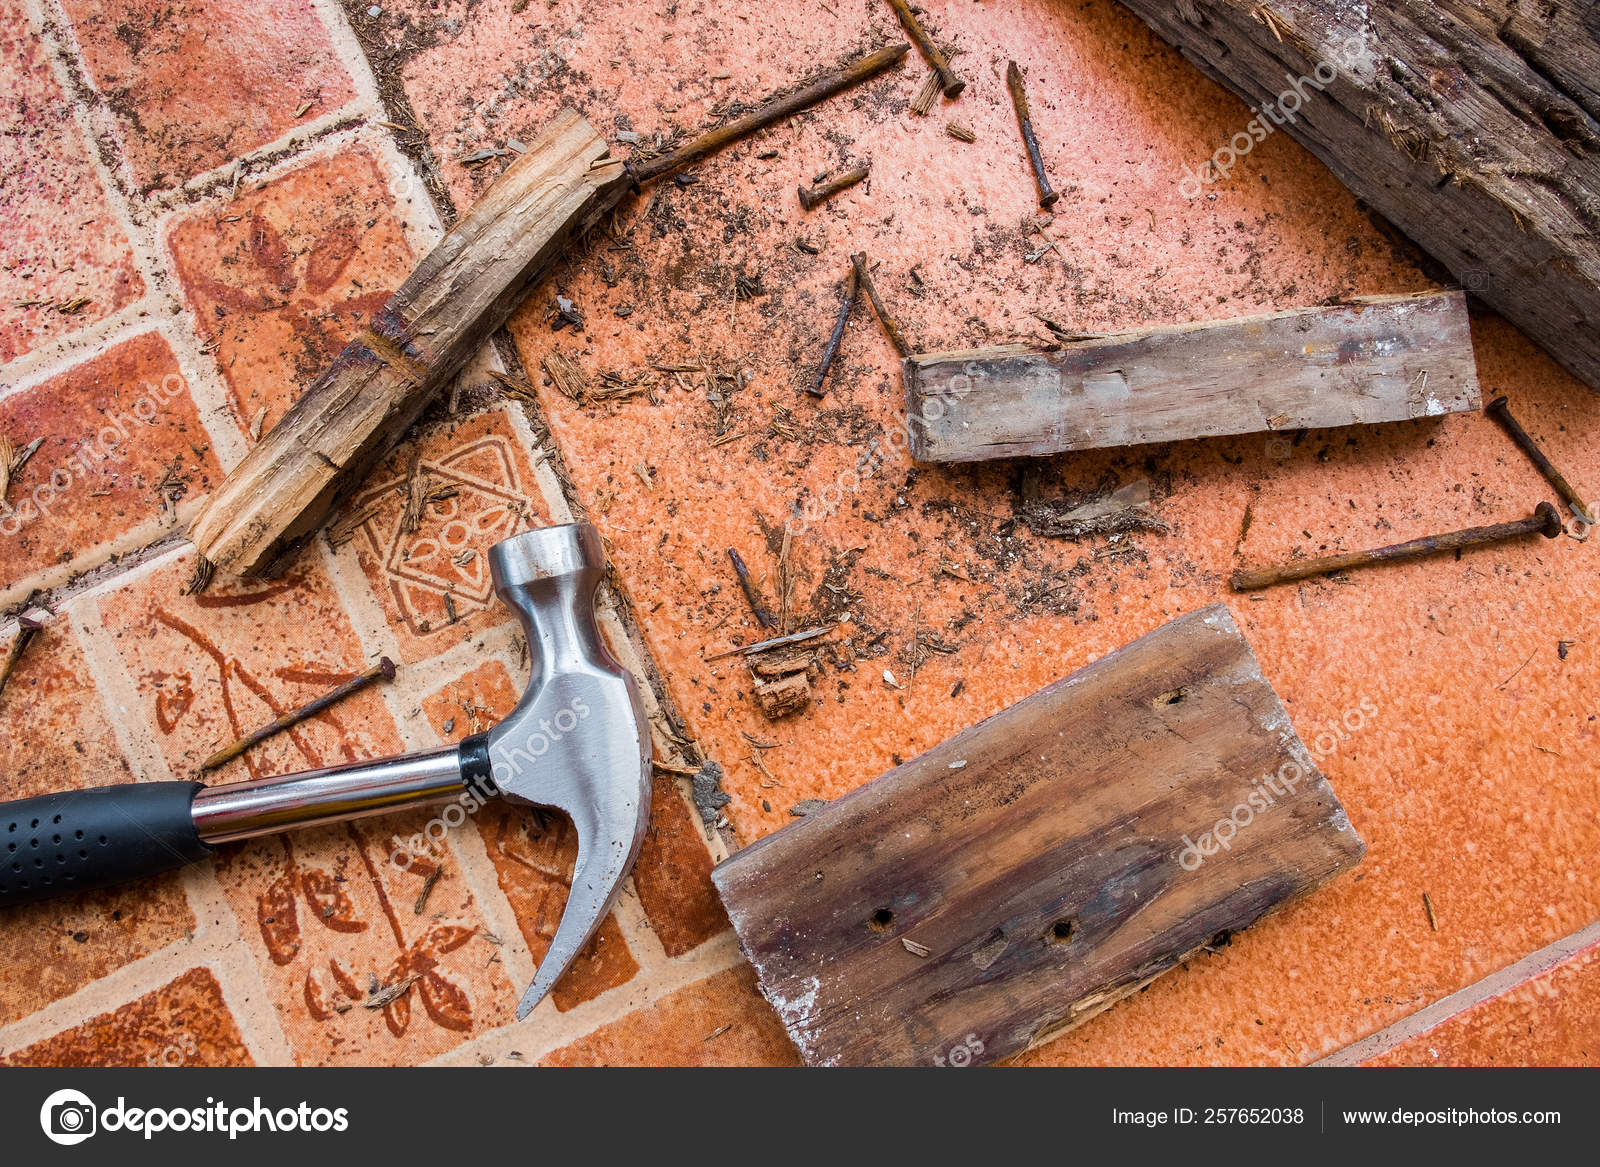 The House Of Hammer workers are repairing the house and using a hammer to pull